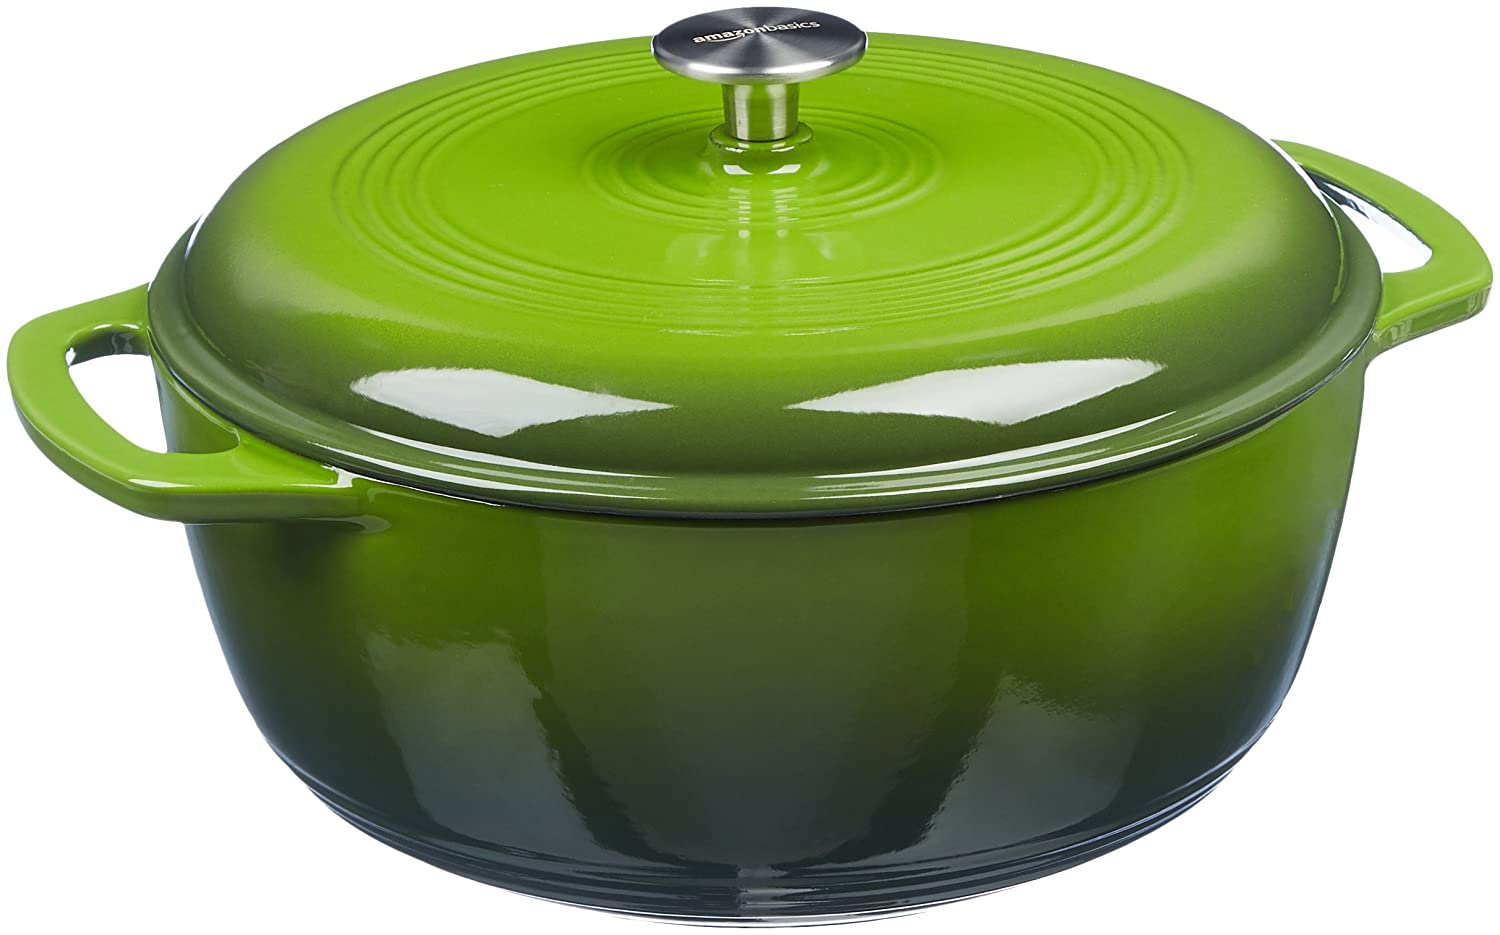 AmazonBasics Enameled Cast Iron Dutch Oven - 6-Quart, Green